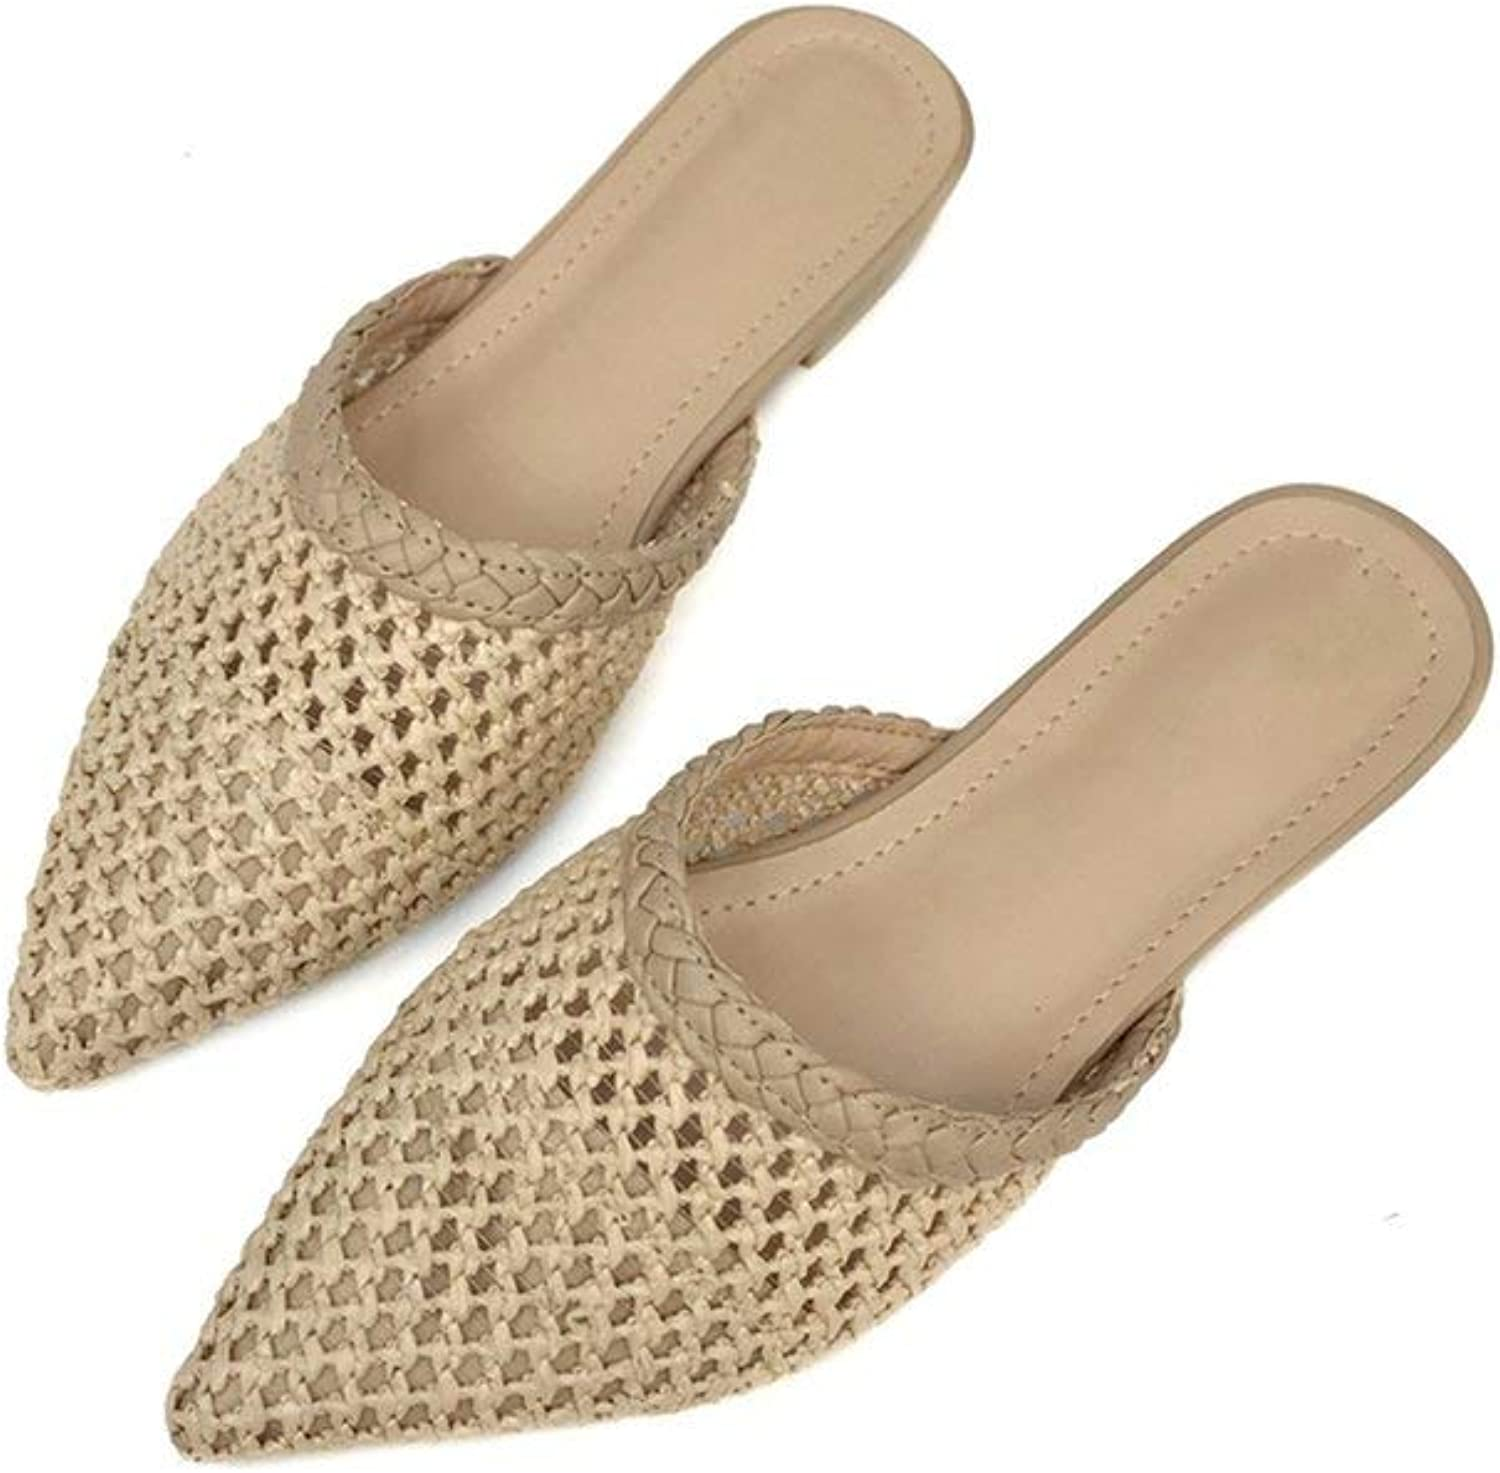 HuaHua-Store Women Pointed Toe Low Heel Slide Sandals Summer Slippers Cane Woven Beach shoes Mule Slippers